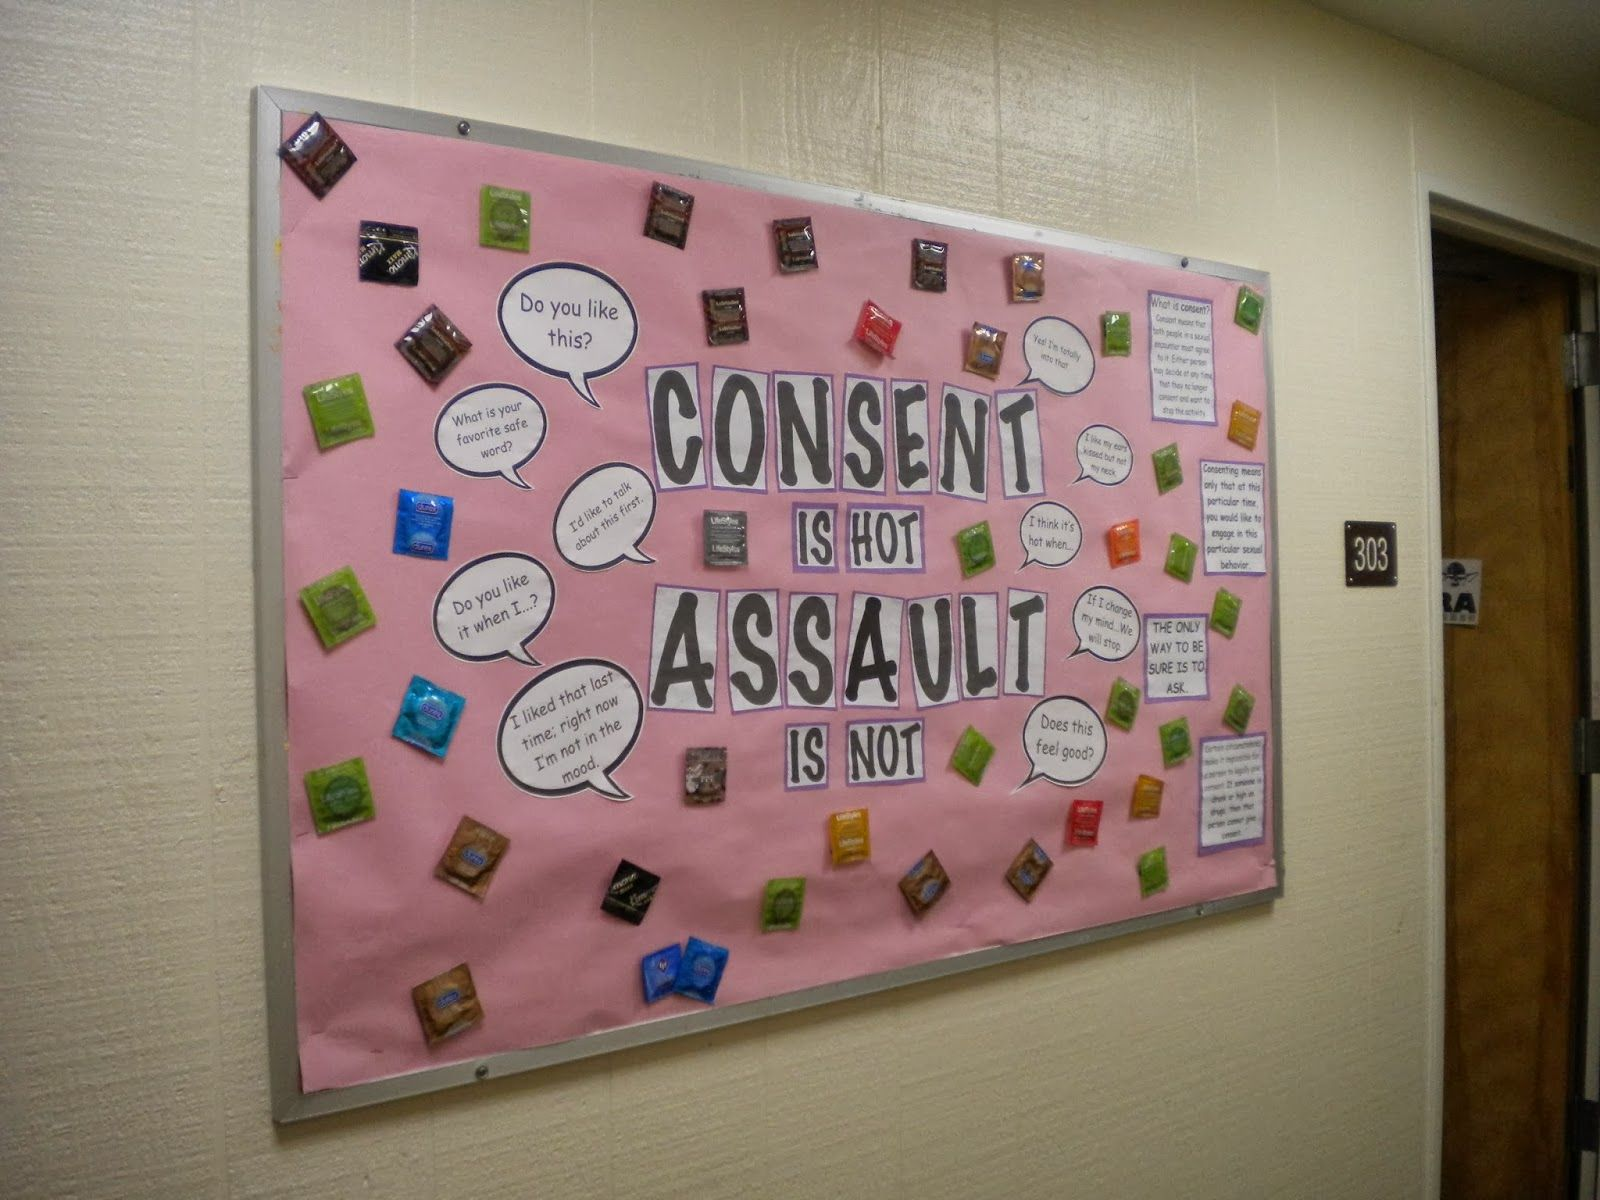 consent is hot assault is not bulletin board sexual consent consent is hot assault is not bulletin board sexual consent resident advisor resident assistant